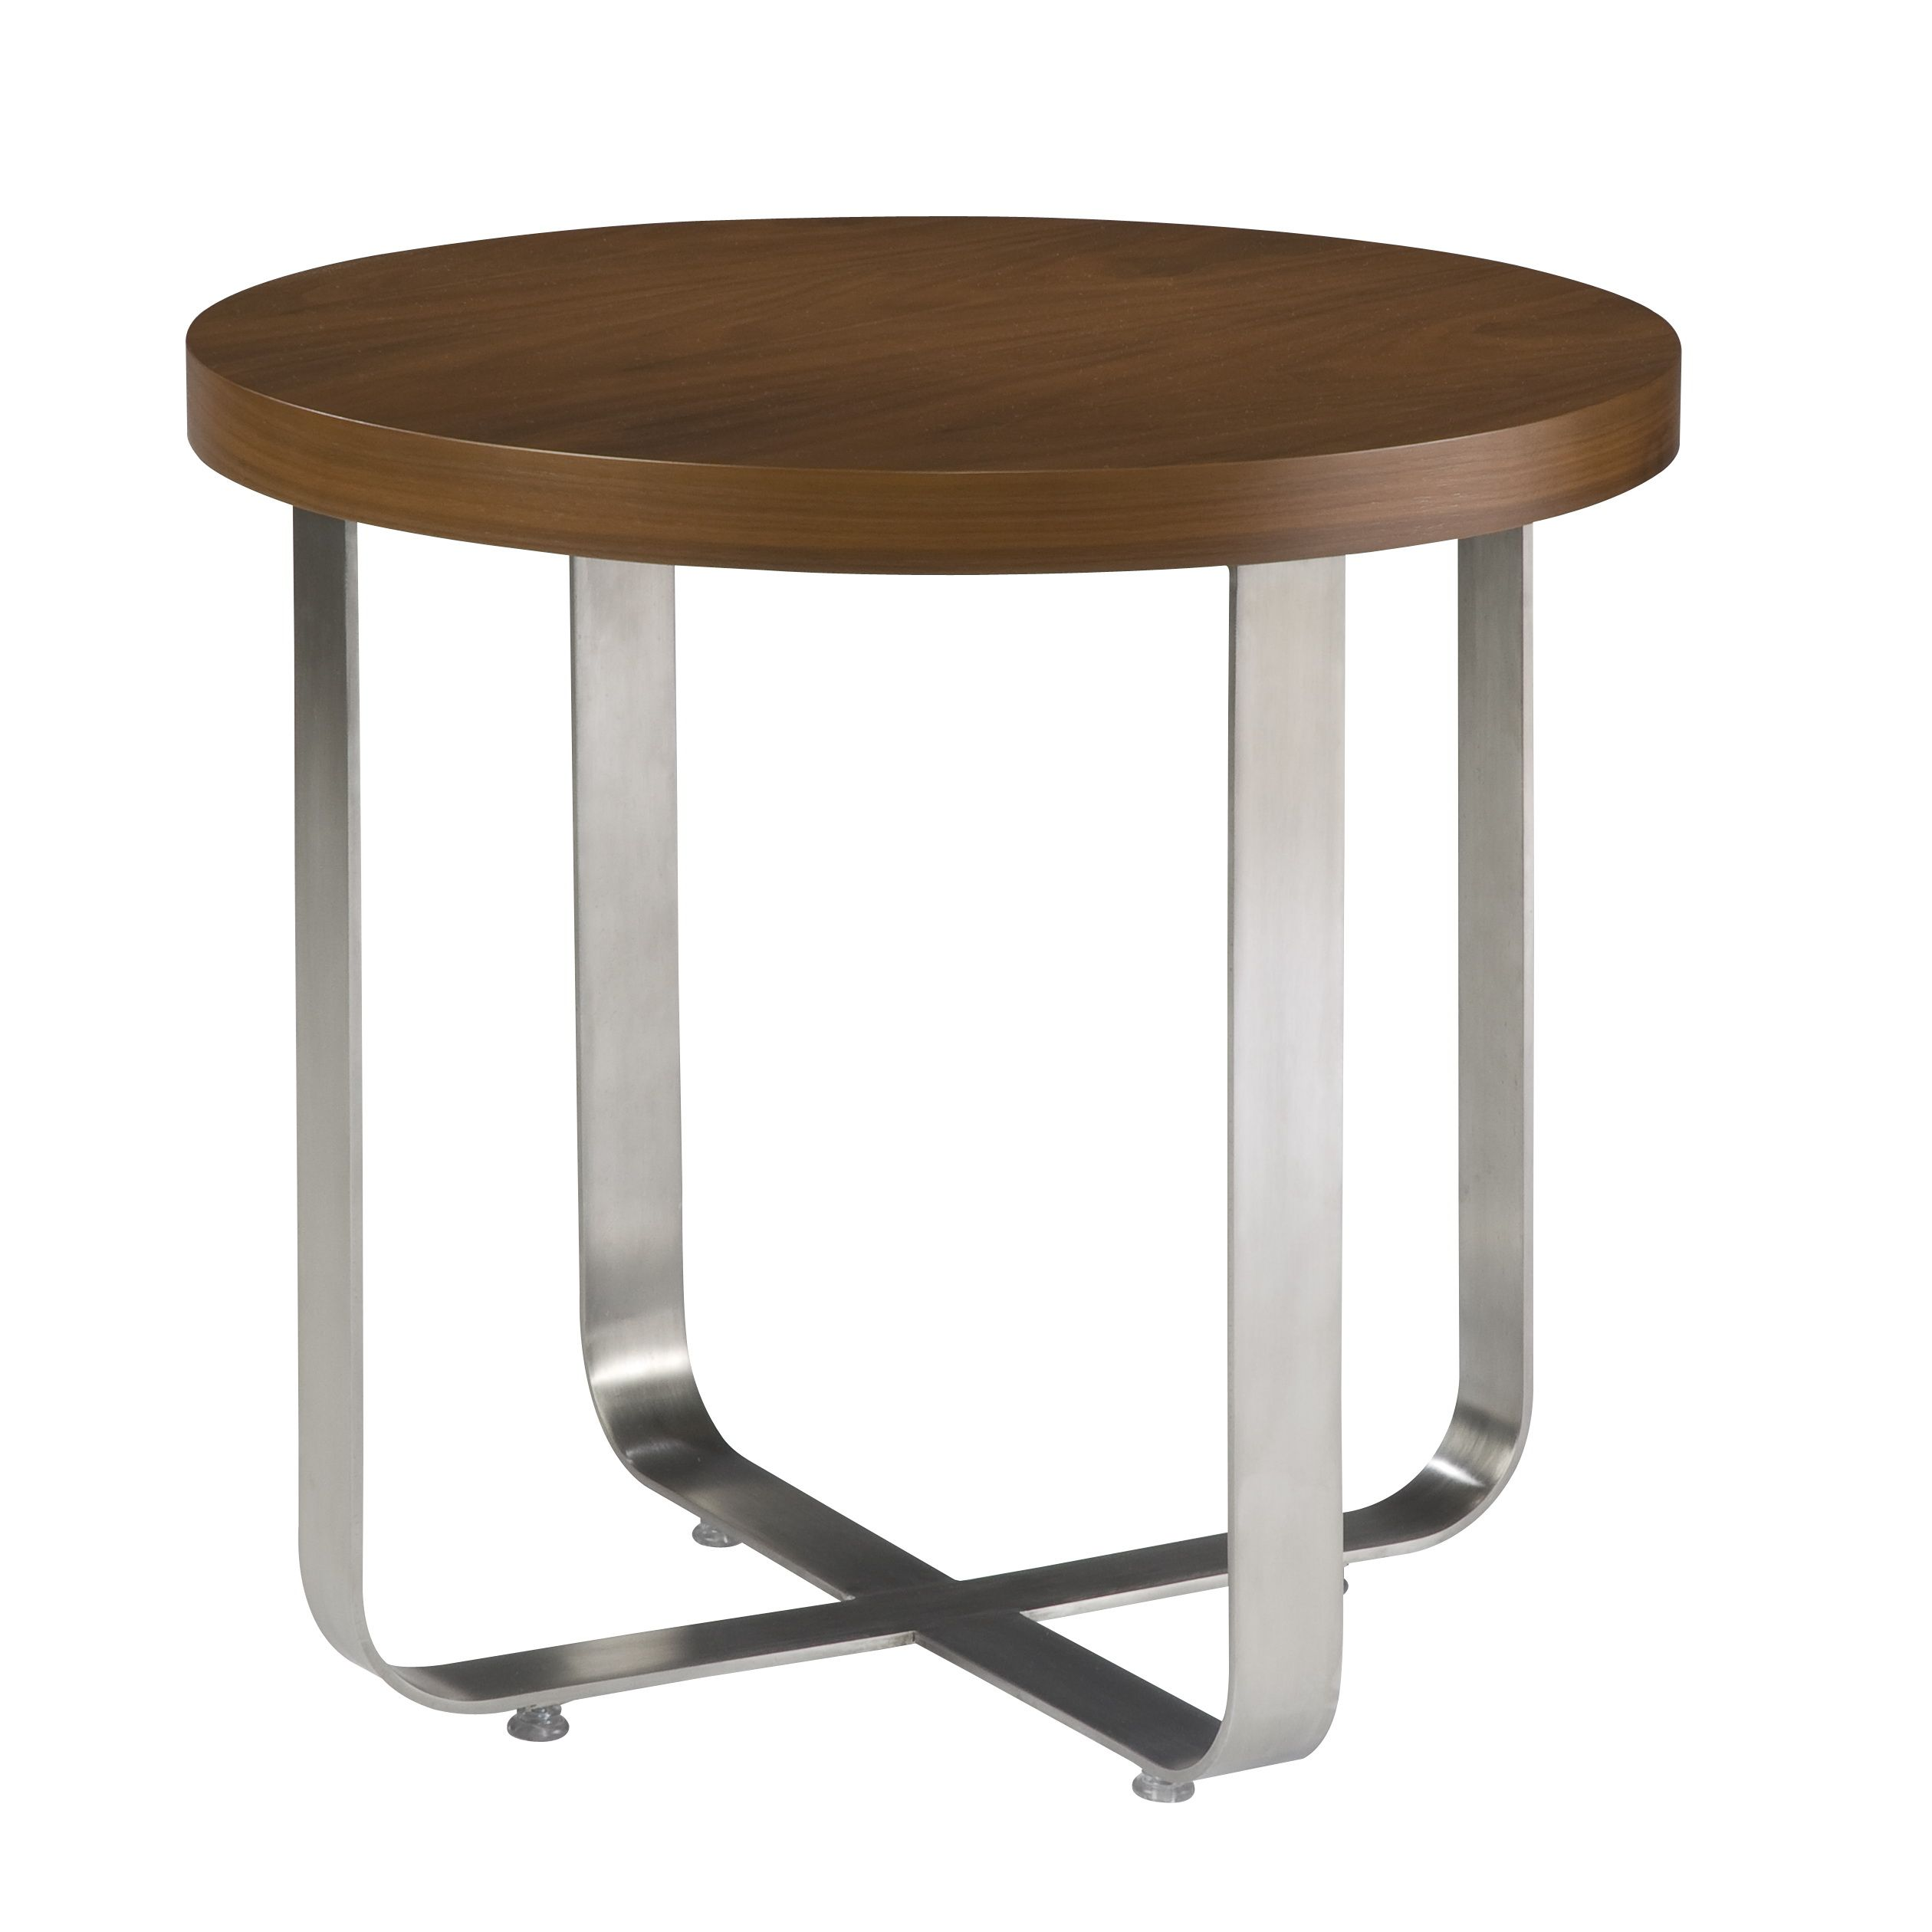 end holiday inn express accent table commercial allan copley designs artesia round rustic side tables living room beach wall decor tablecloth rental coloured glass coffee